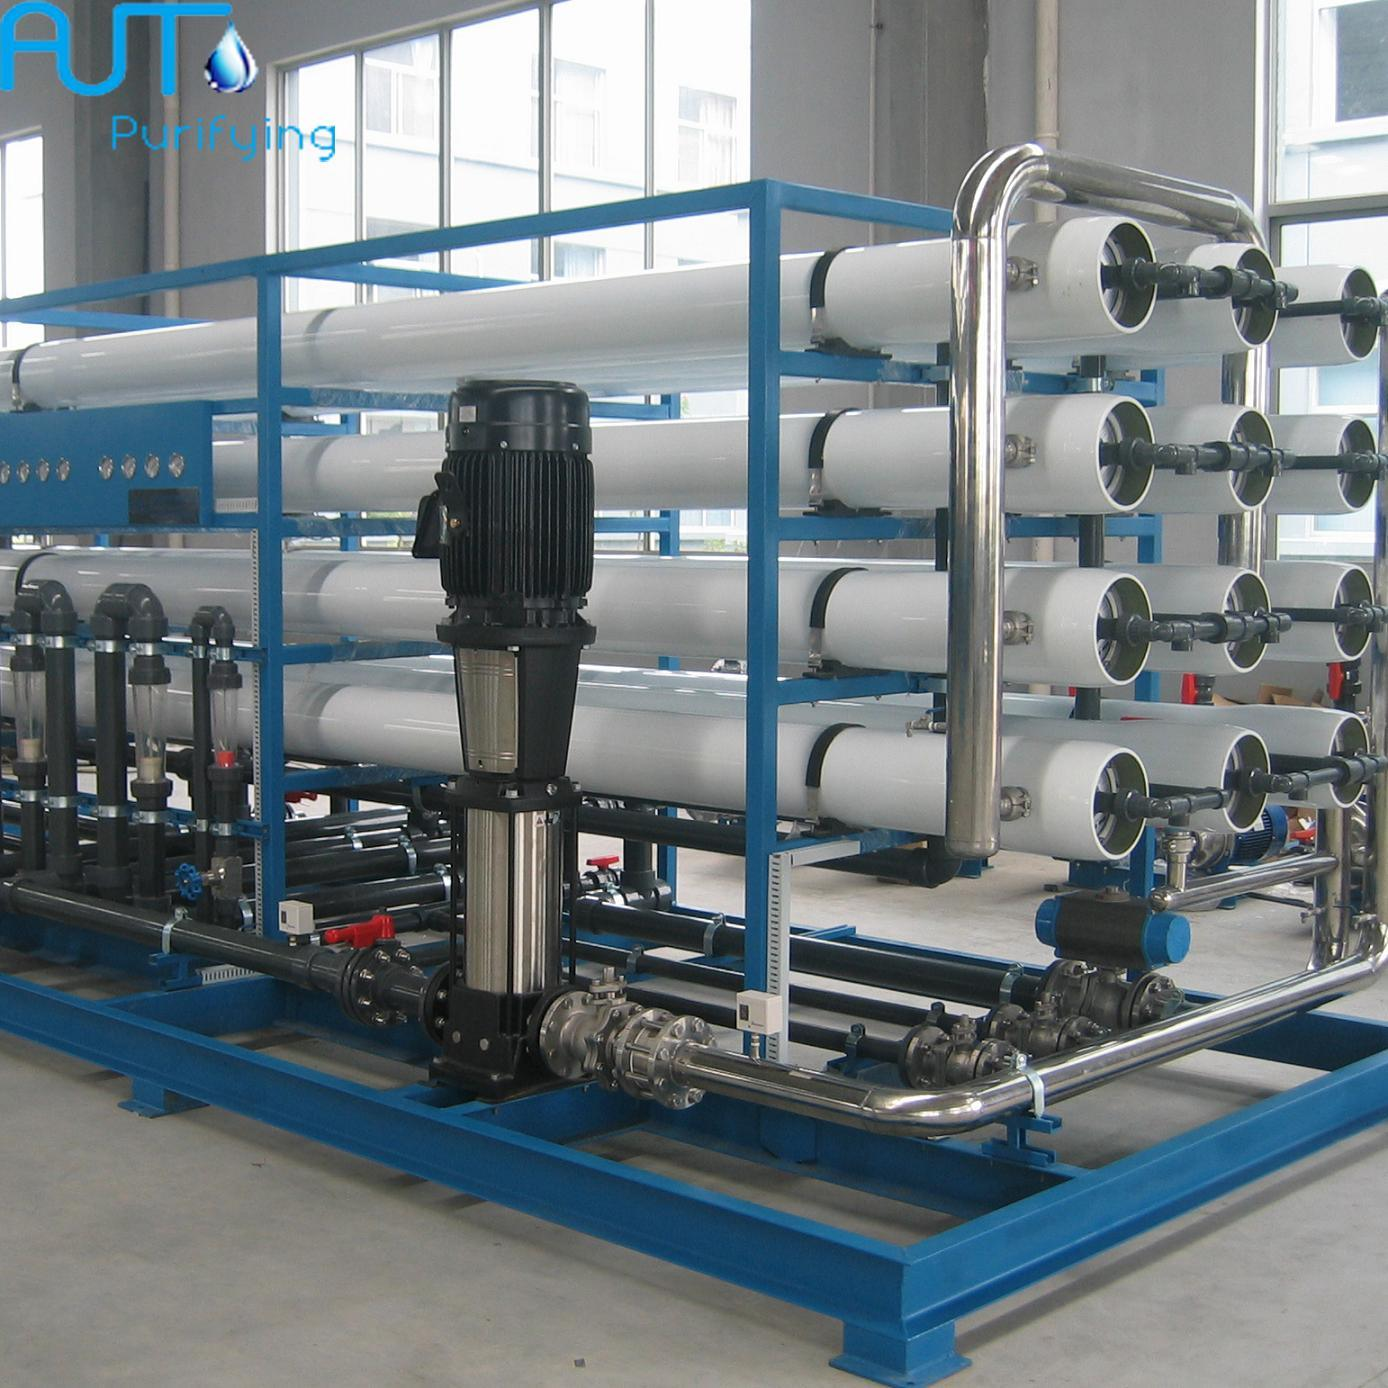 [Hot Item] High Quality Industrial Water Desalination Plant